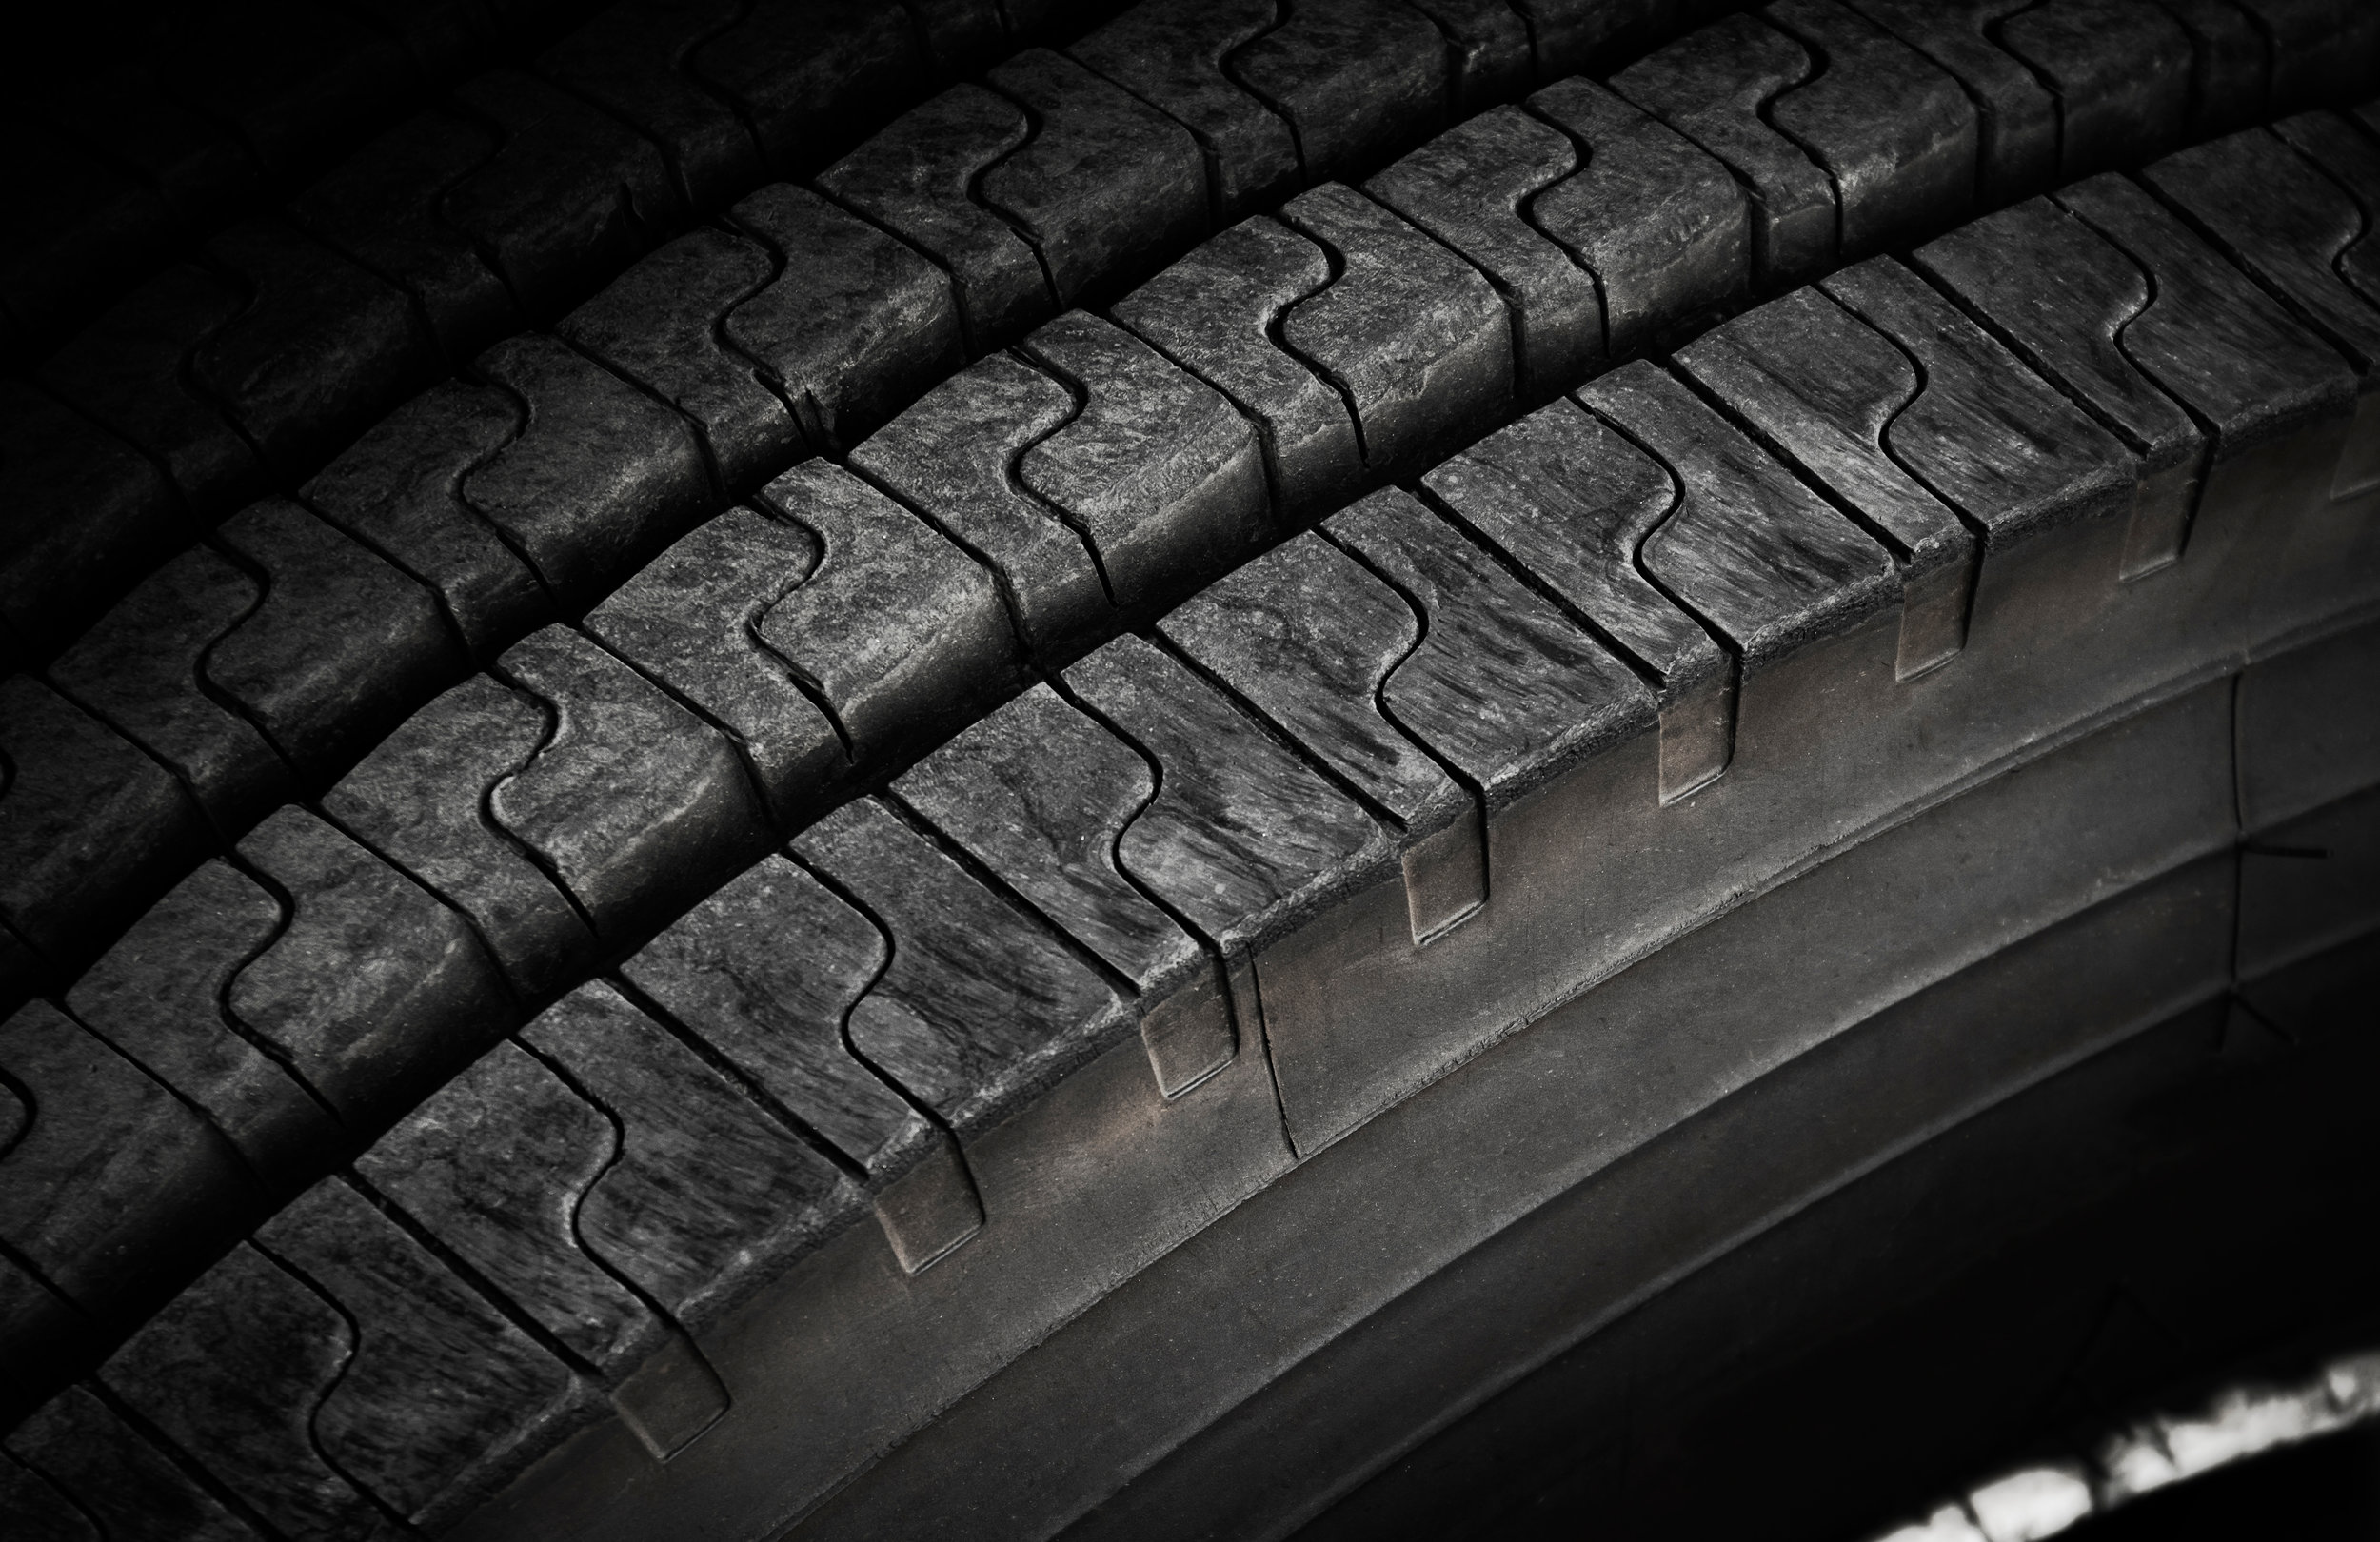 National Account Partnership - We partner with national accounts such as Bridgestone & Continental to streamline your tire service needs.